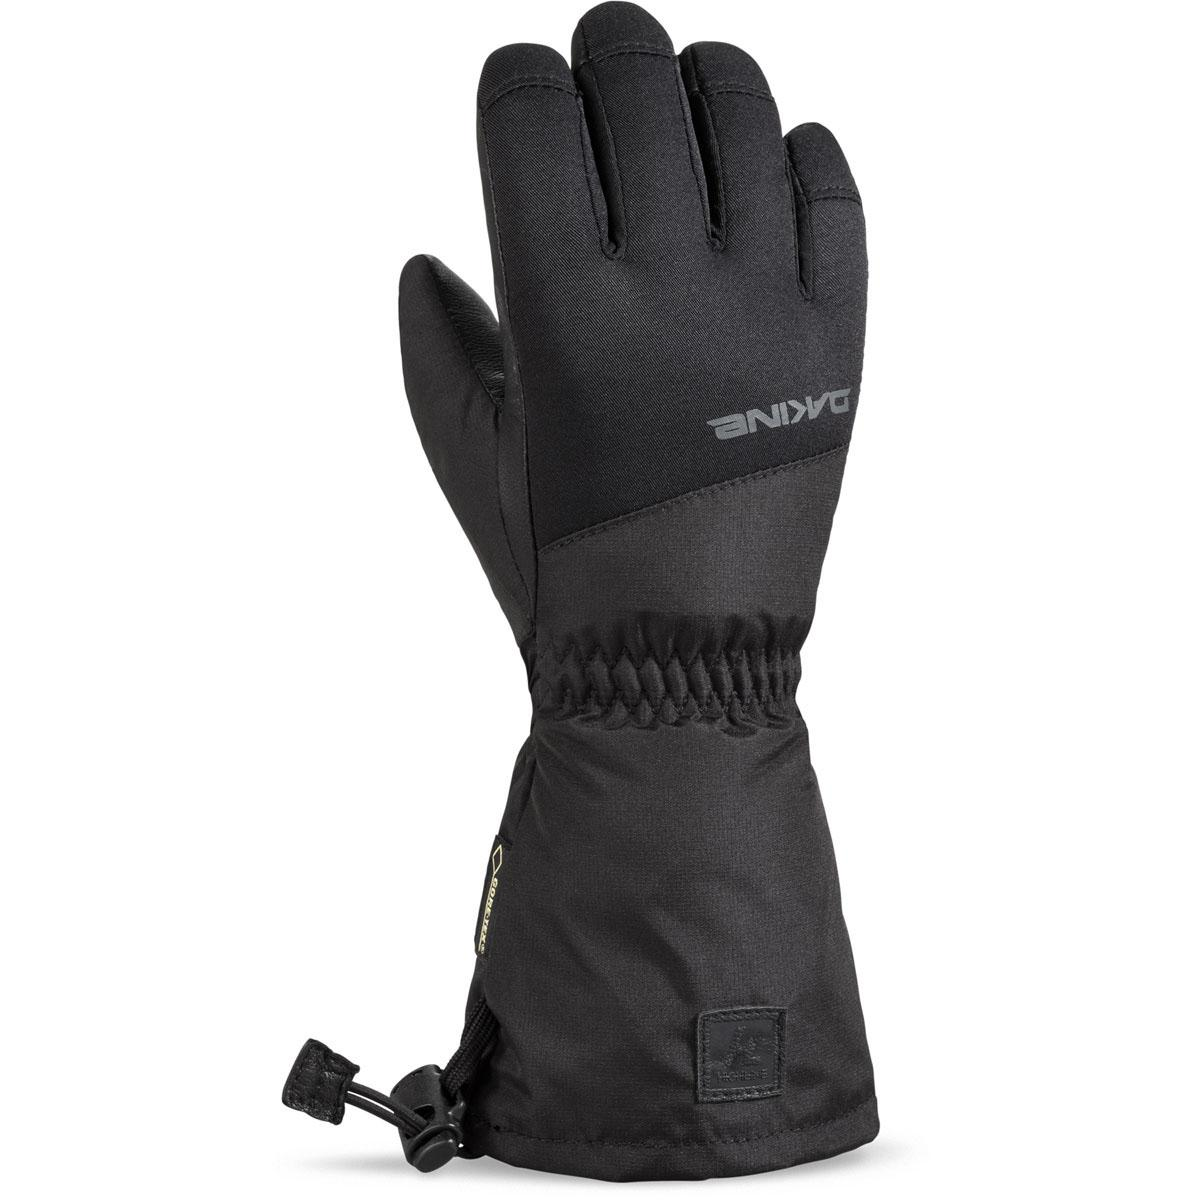 Dakine Rover glove in Black